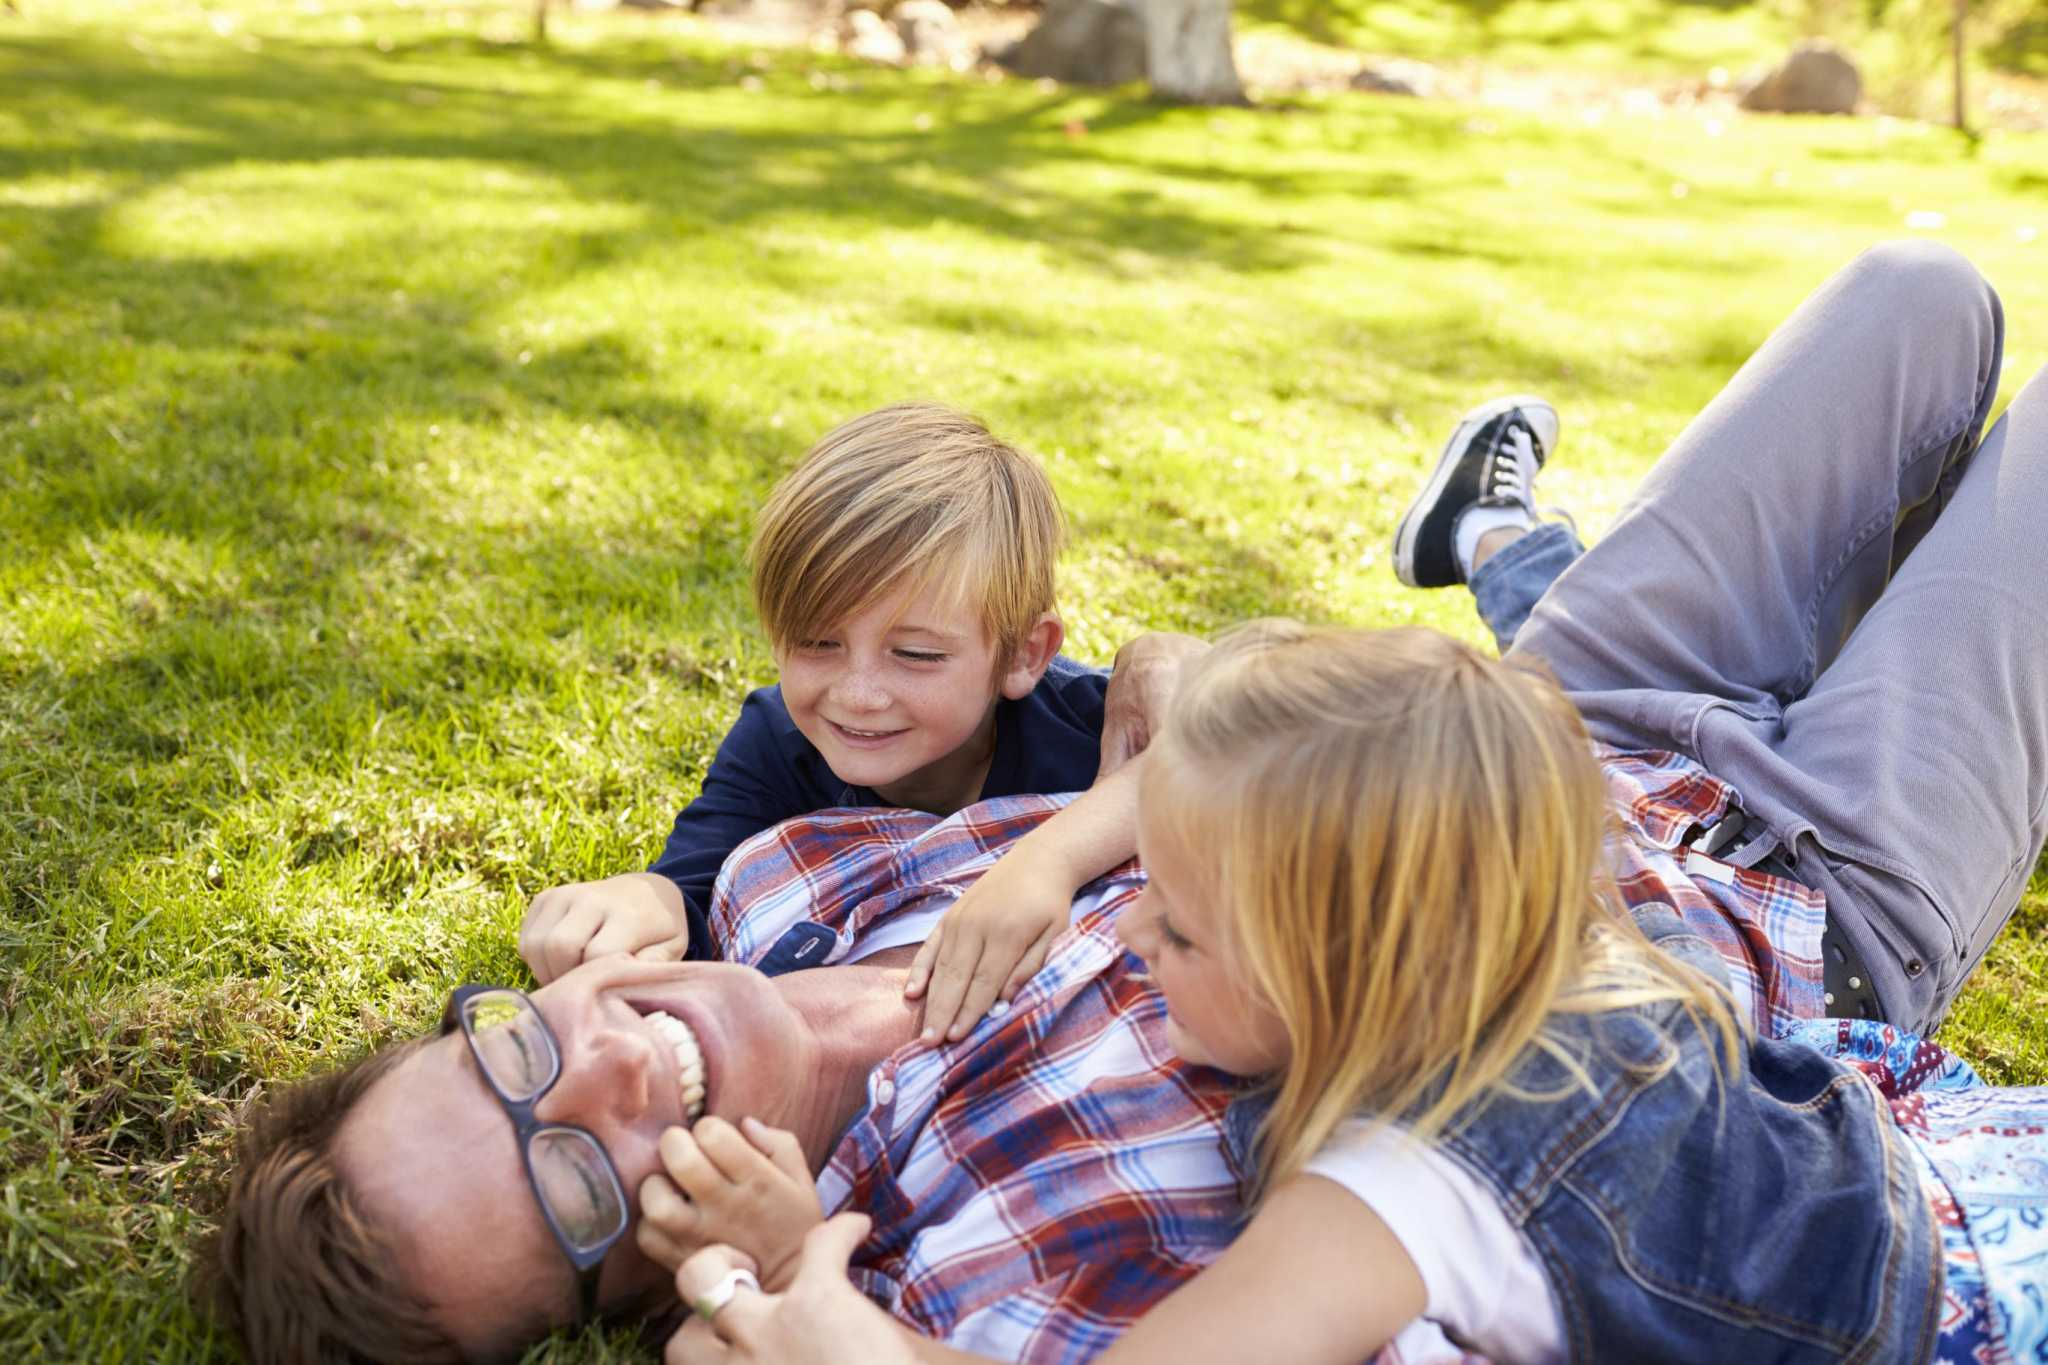 Recognizing Dad power, and how to harness it